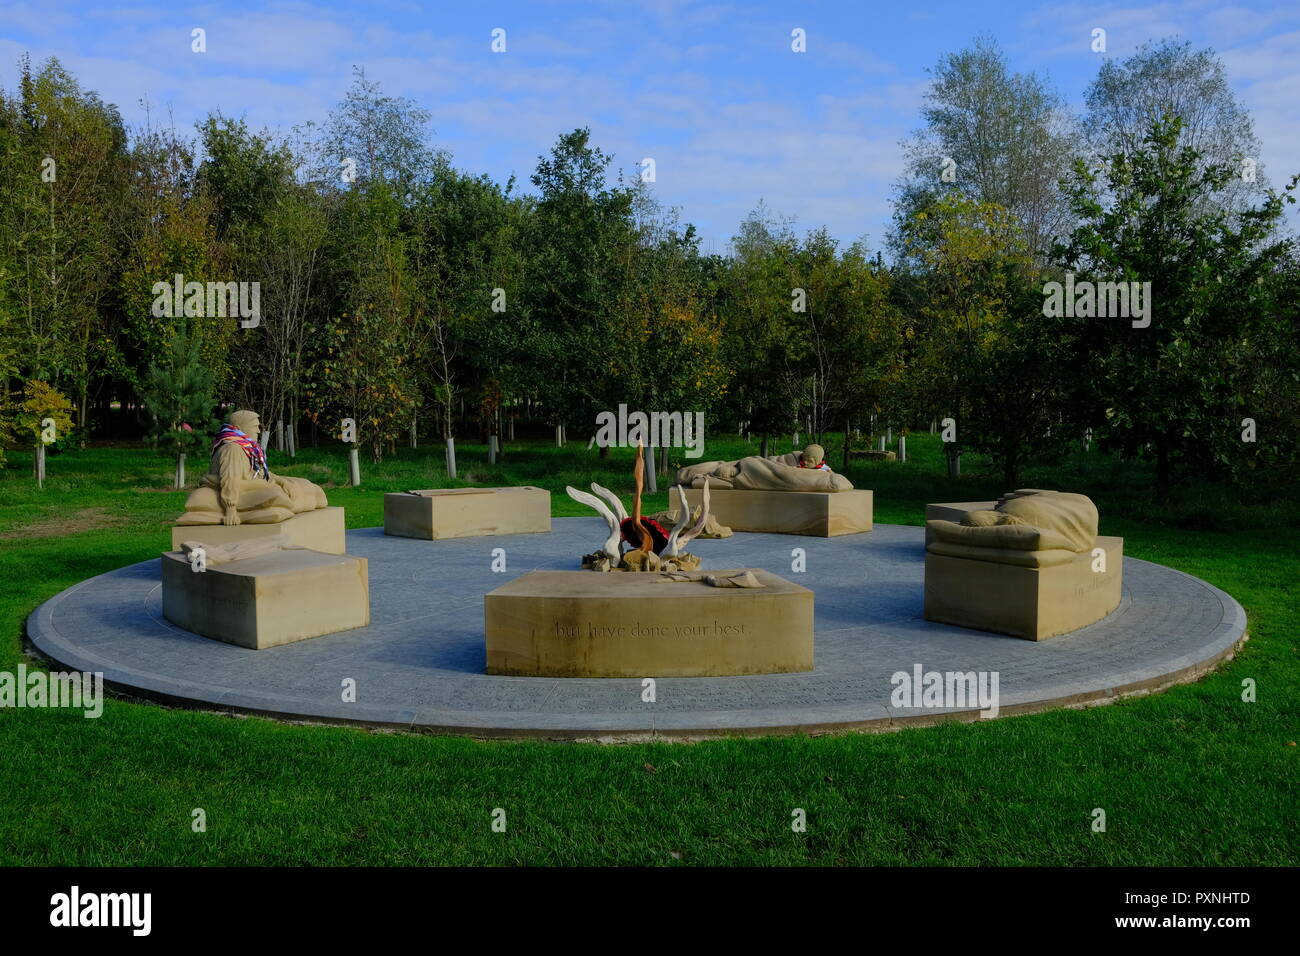 Scouting Association at the National Arboretum - Stock Image